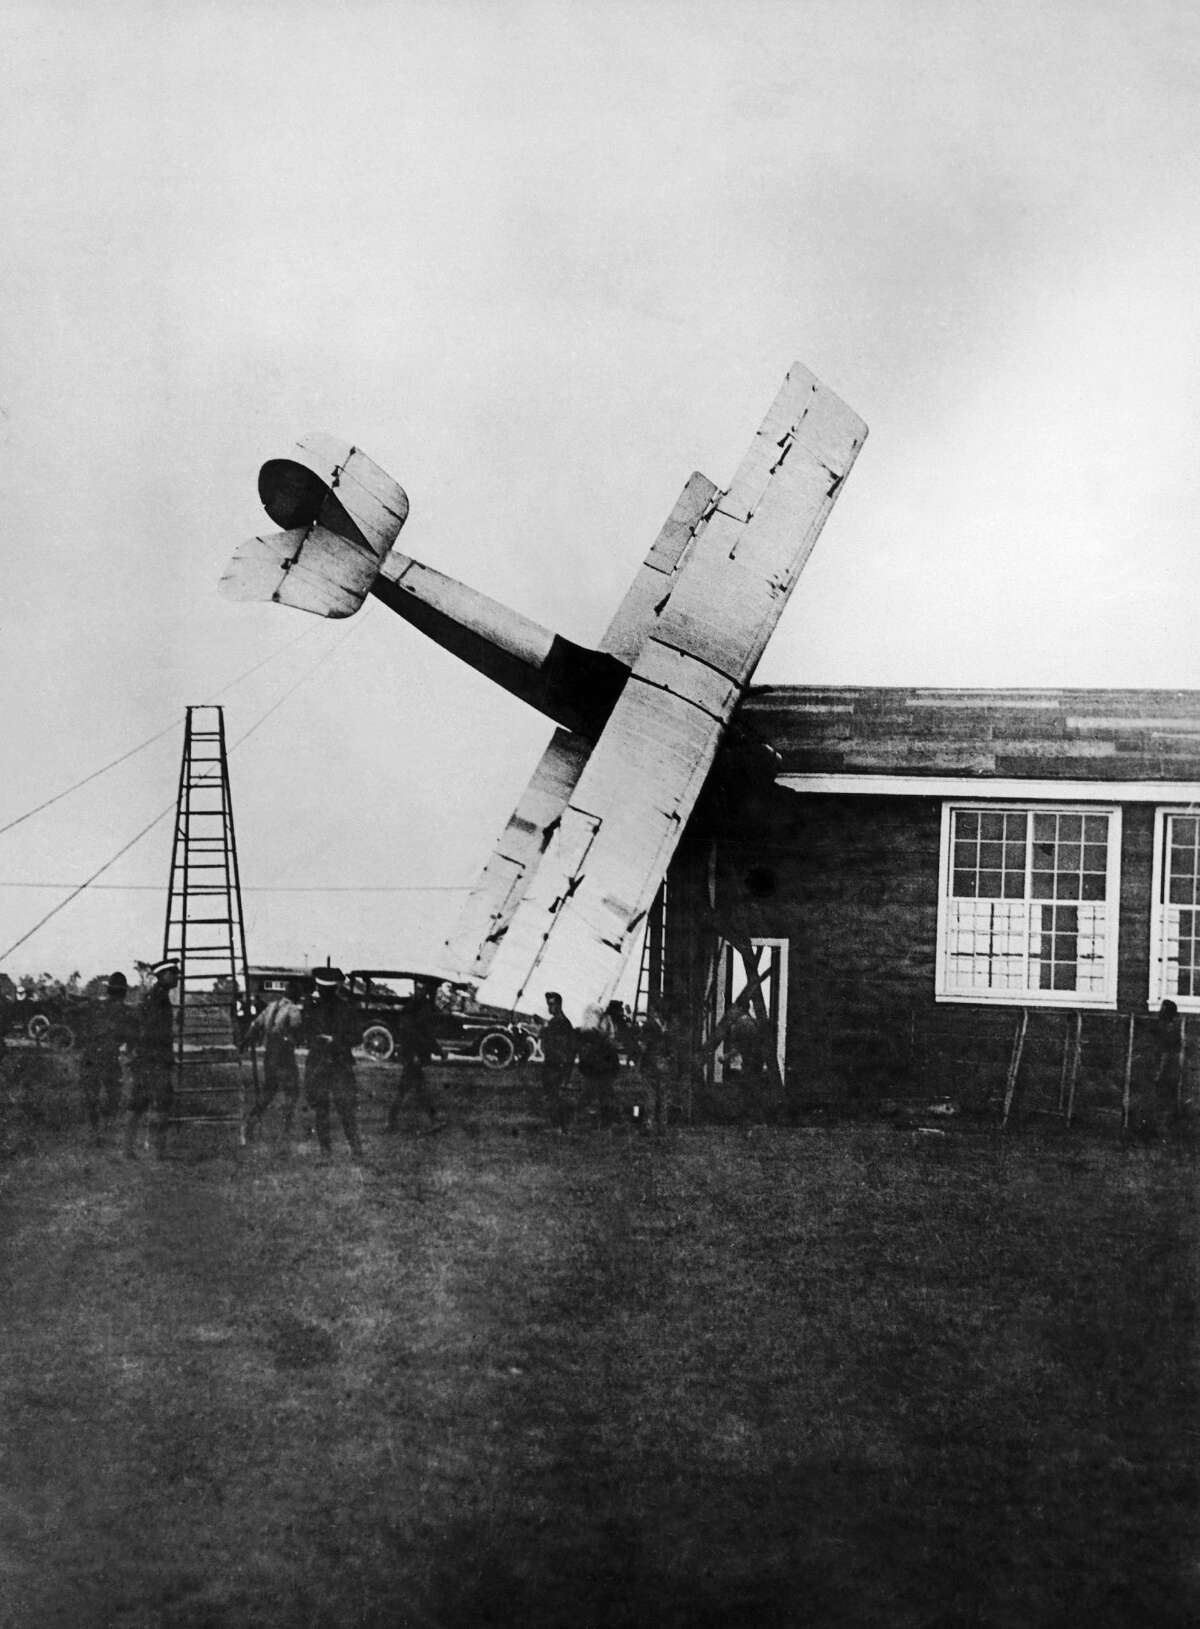 A photographer captures an airplane crash on May 4, 1919, in Texas.